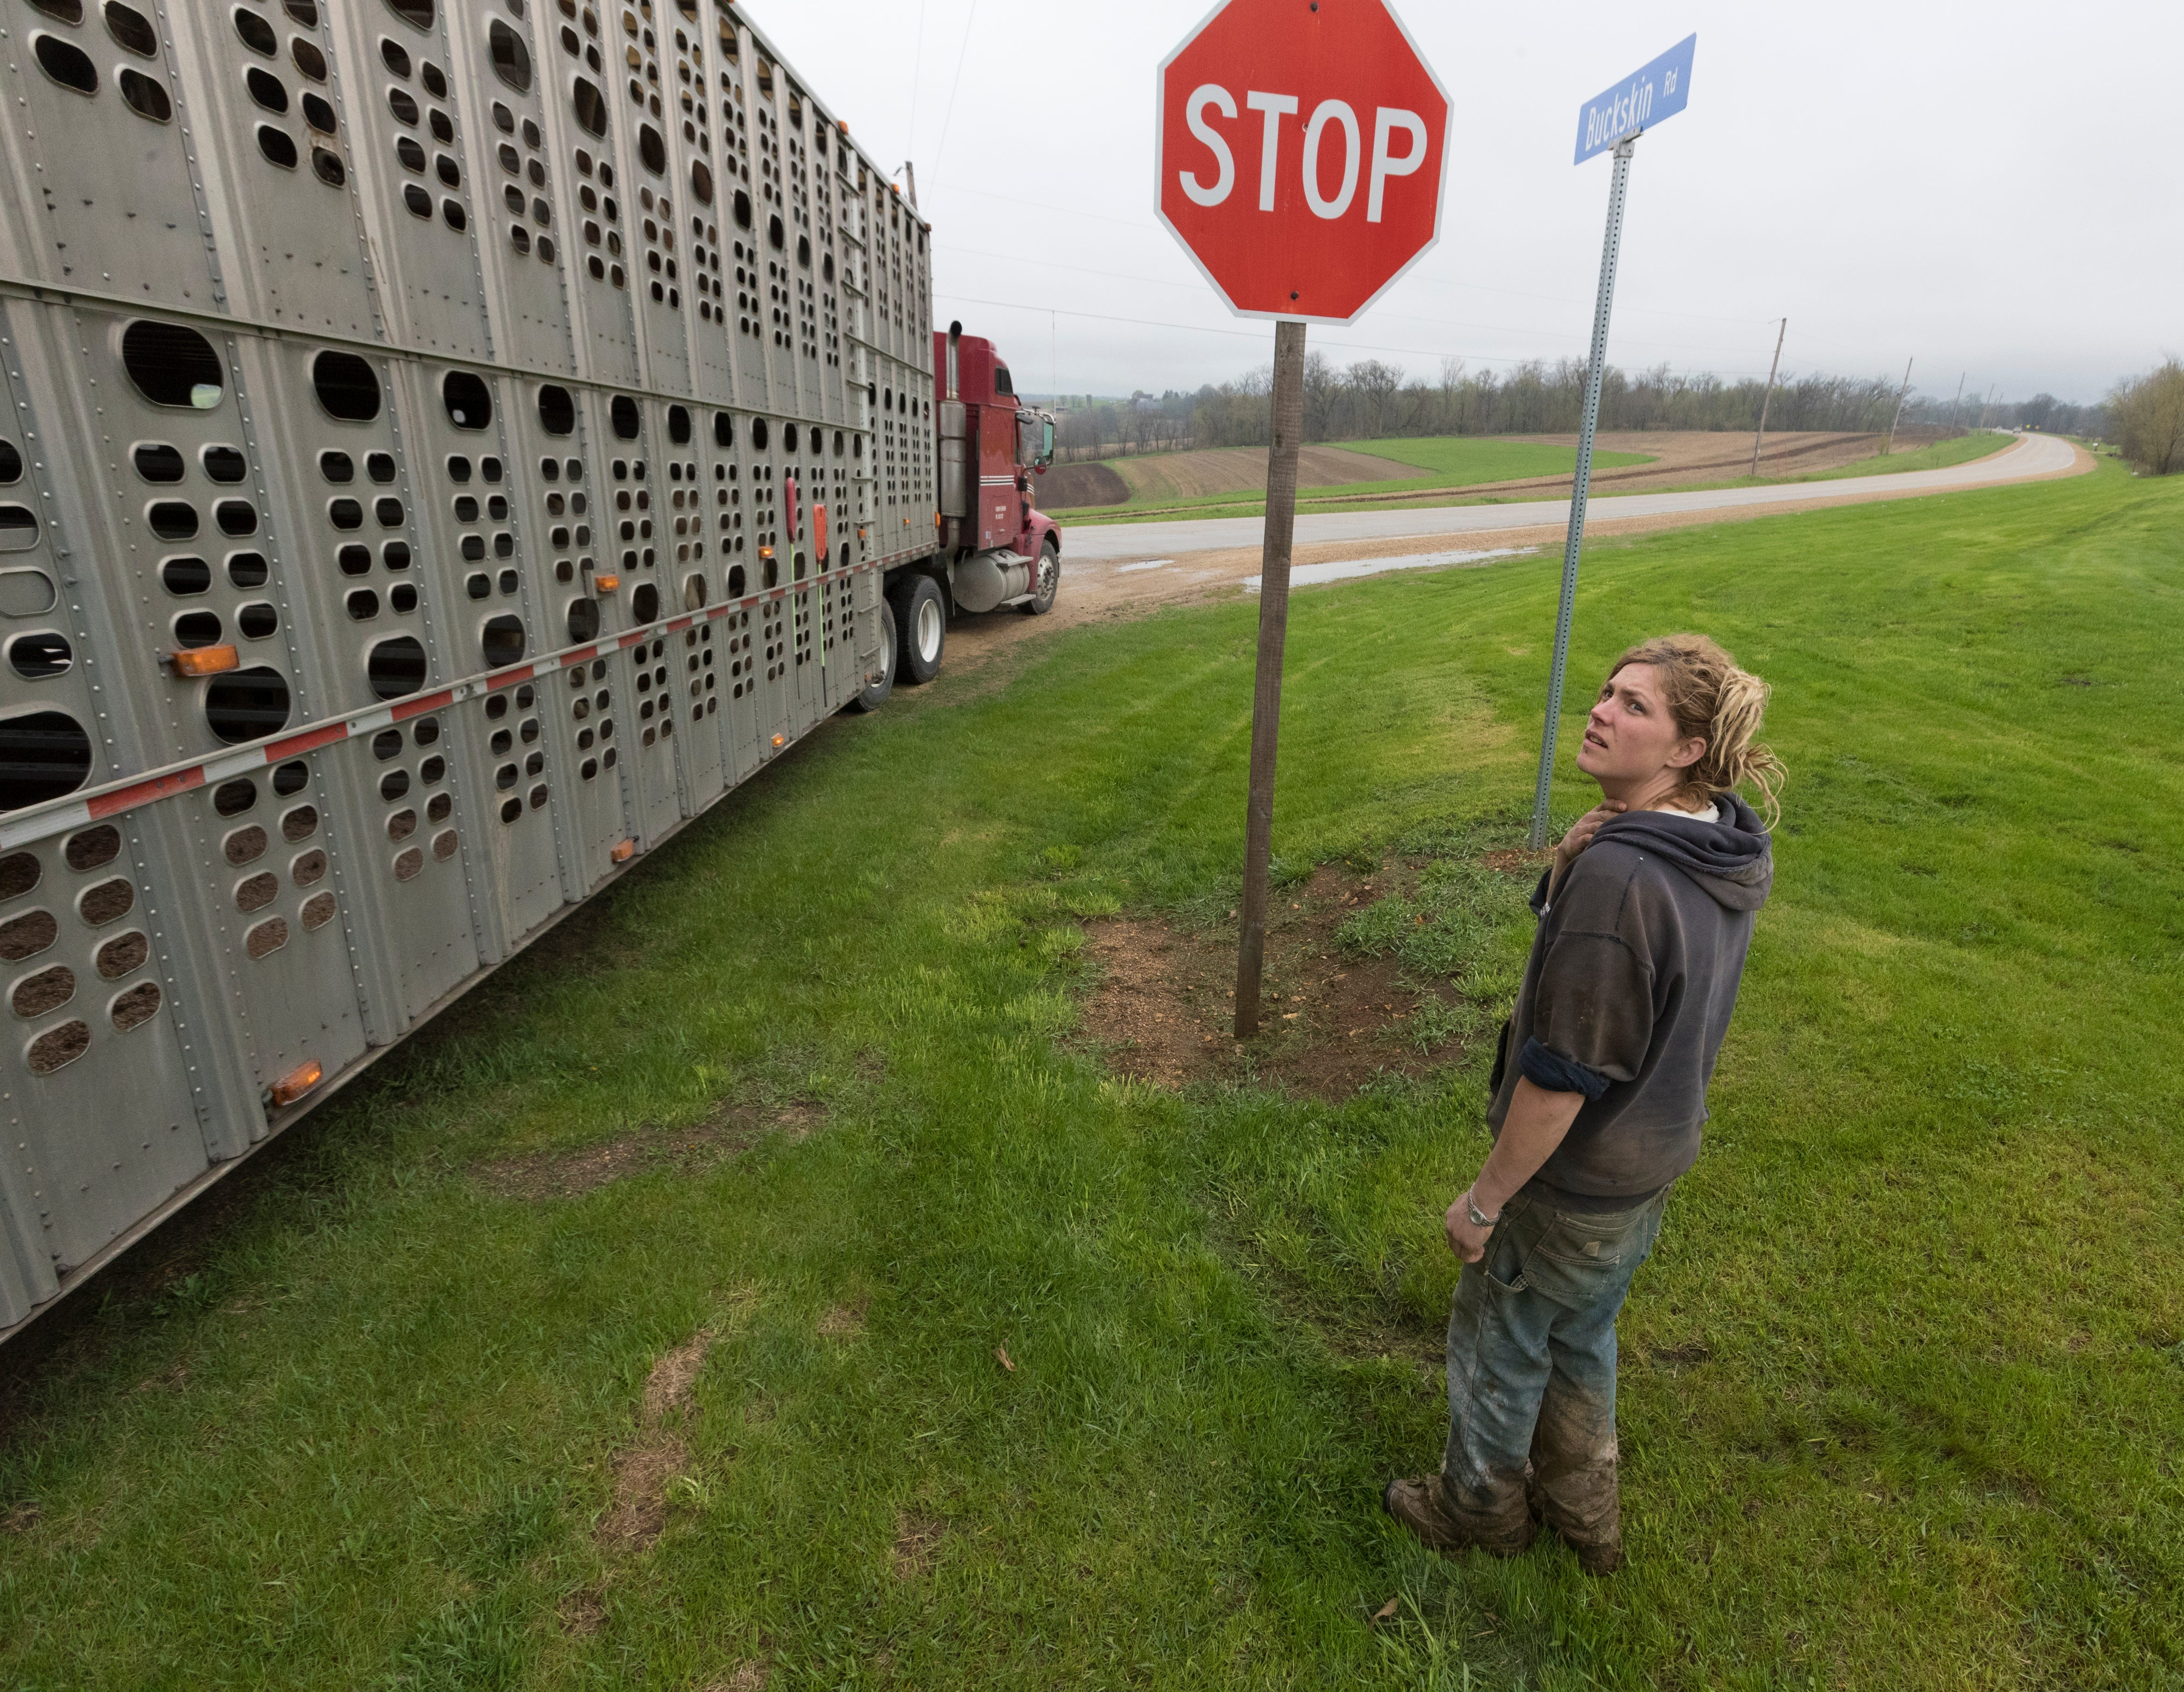 Emily Harris takes a final look at most of her herd as the truck leaves to carry the herd to new farms. Emily and her wife, Brandi Harris, sold their cows and gave up dairy farming.